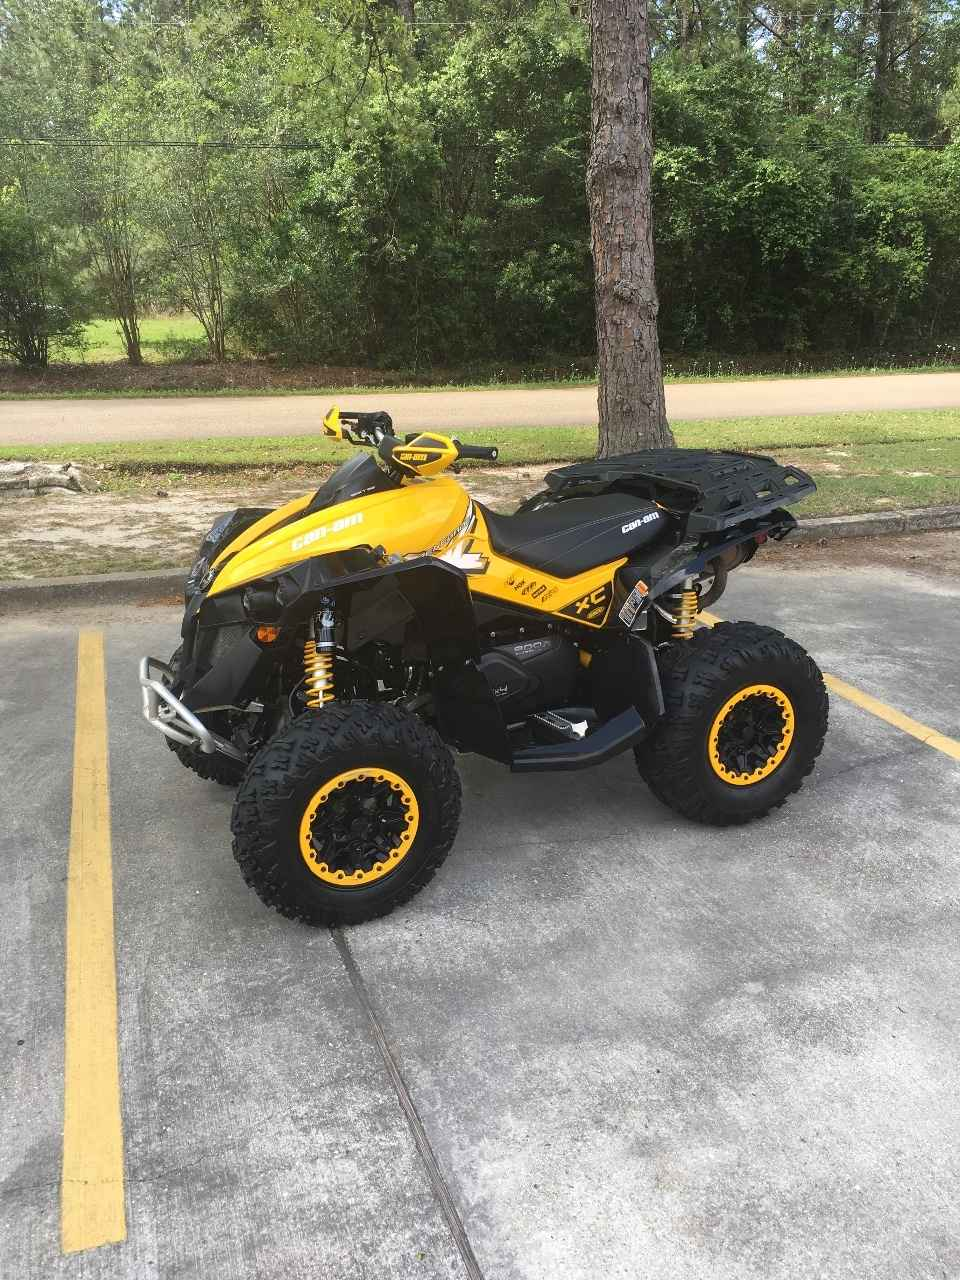 Used 2015 Can Am Renegade X Xc 800r Atvs For Sale In Louisiana On Atv Trades